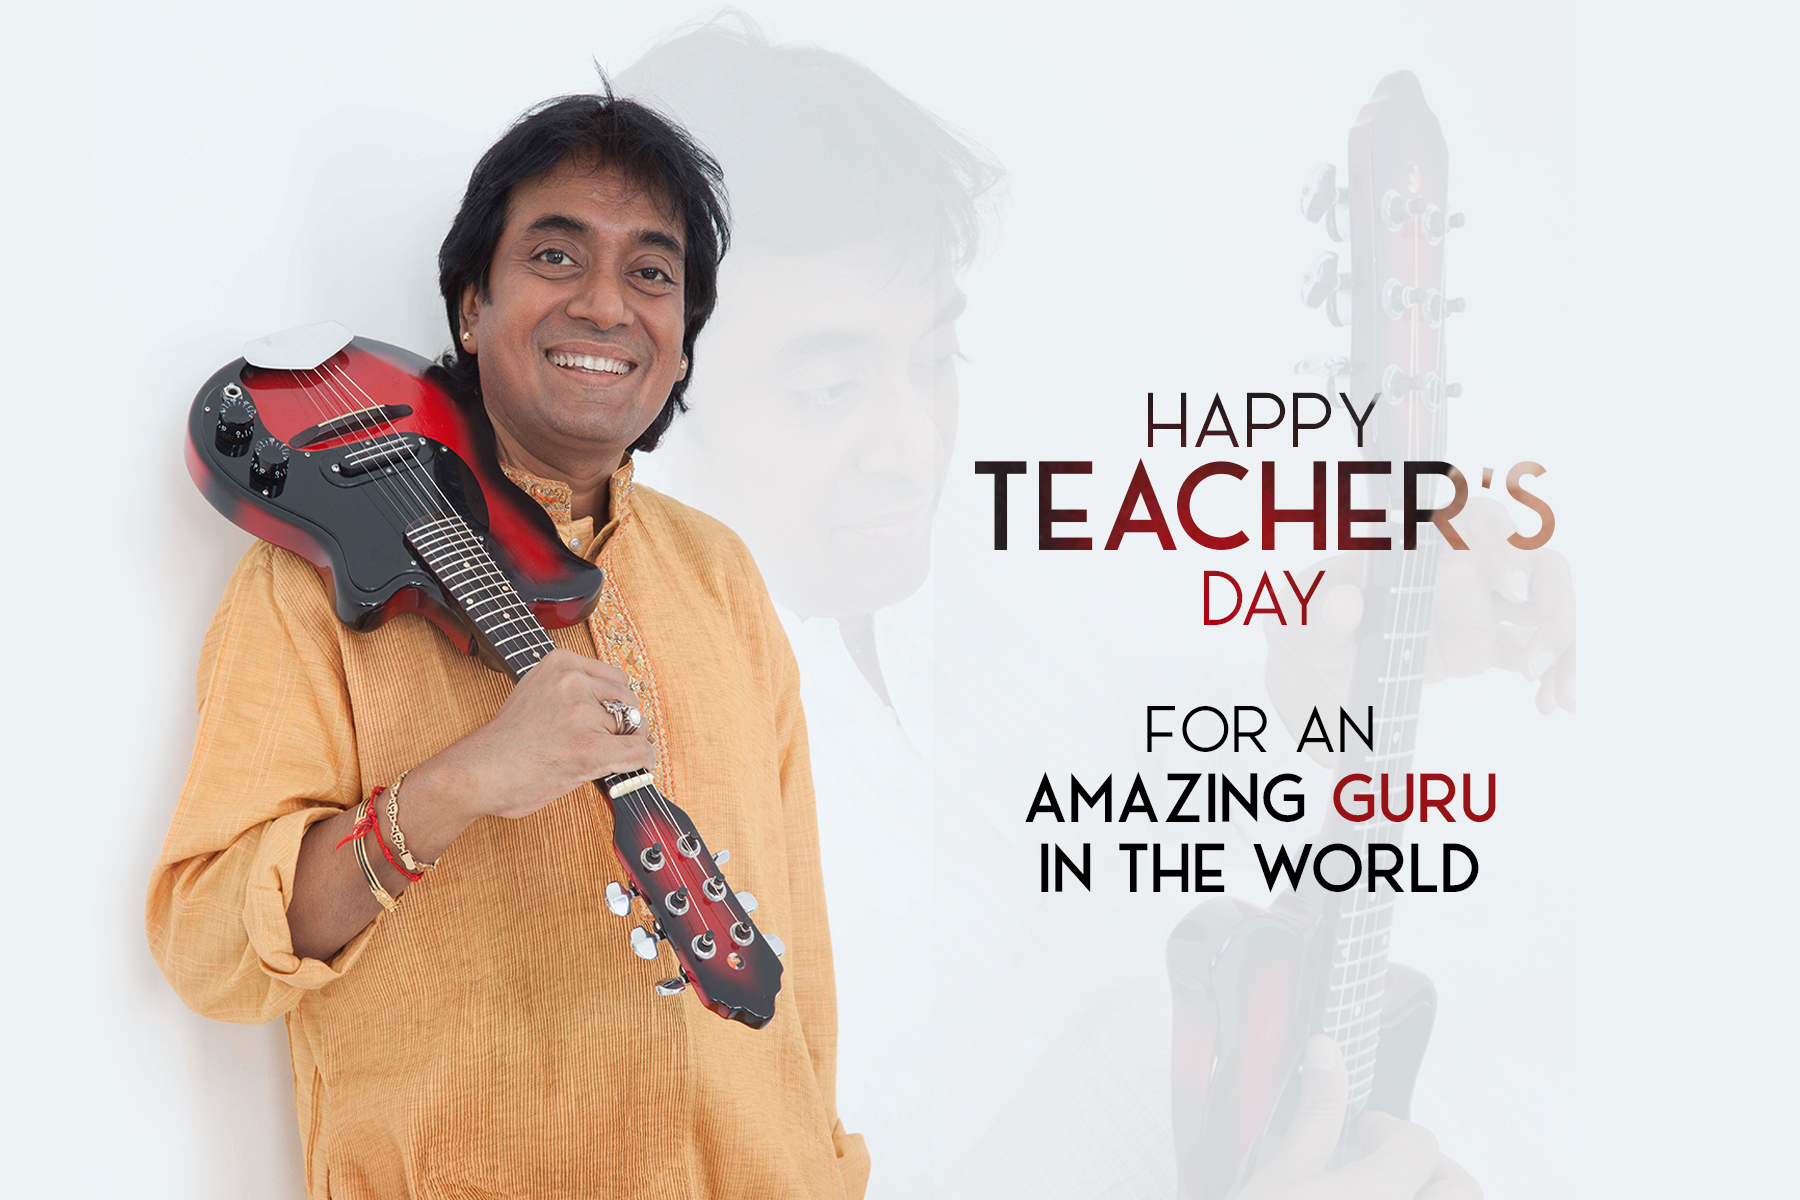 mandolin-u-rajesh-wishes-teachers-day